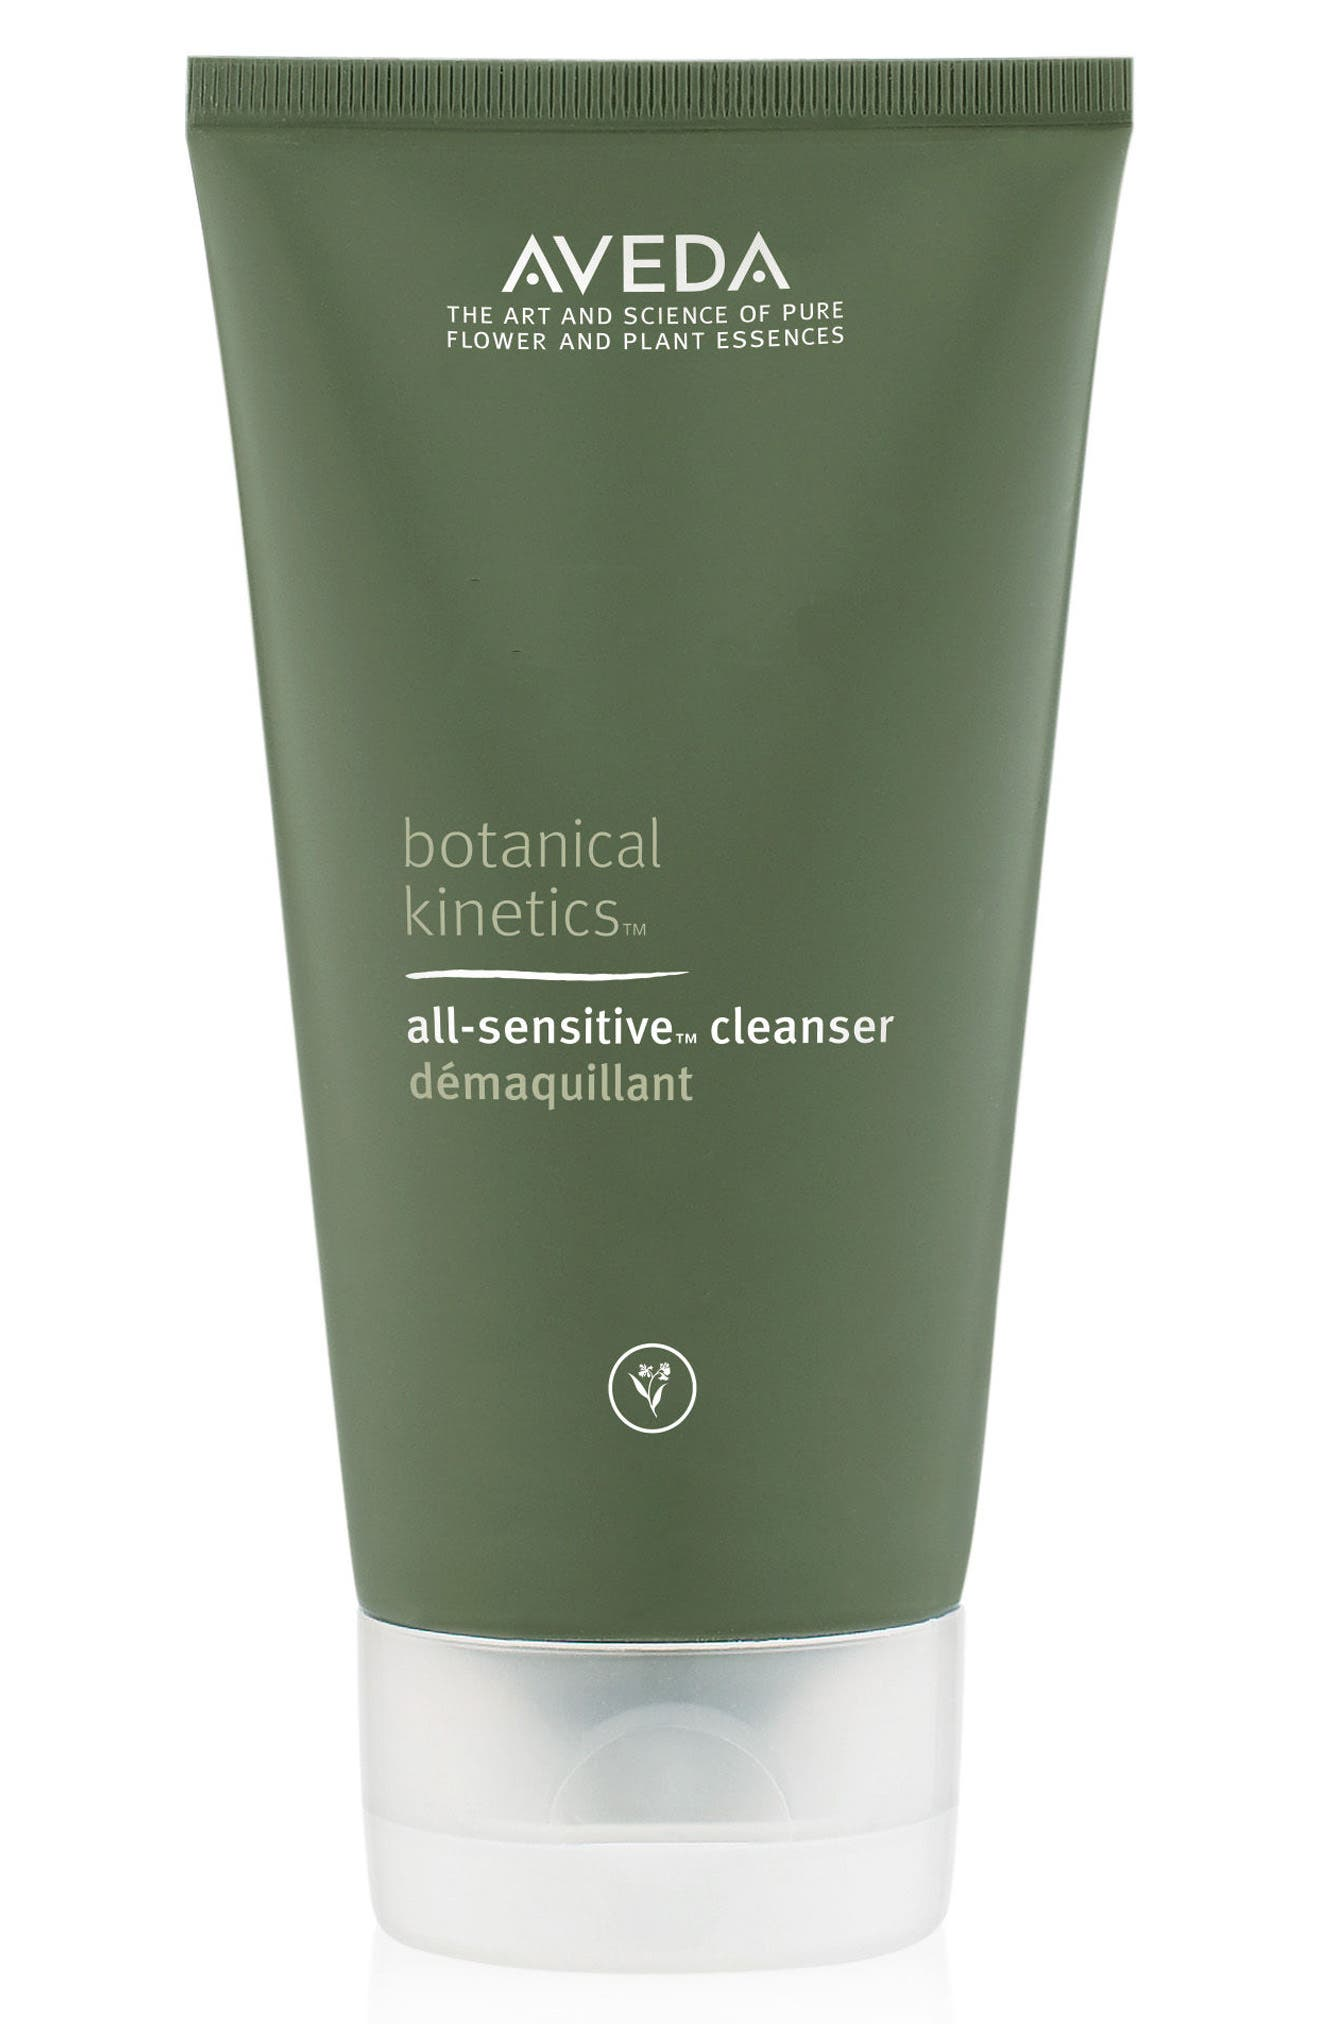 Main Image - Aveda botanical kinetics™ All-Sensitive Cleanser